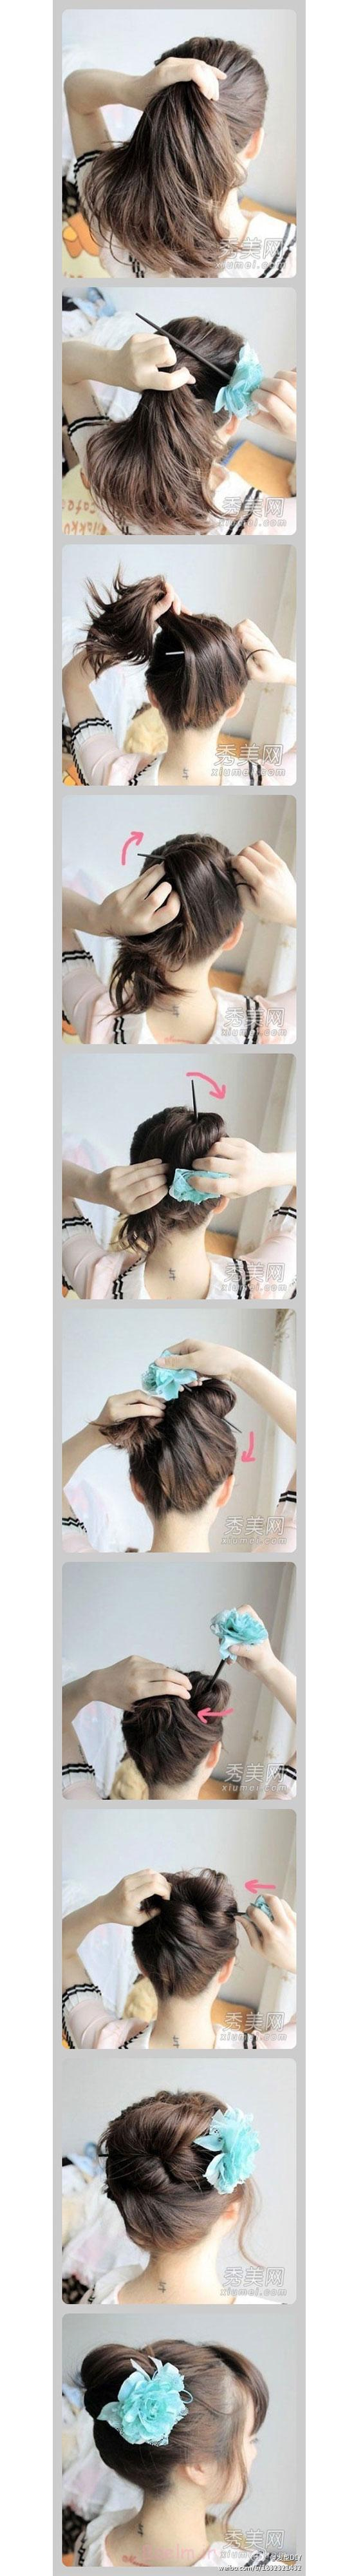 Inspiring-Christmas-Hairstyle-Tutorial-Ideas-2012-For-Girls-1